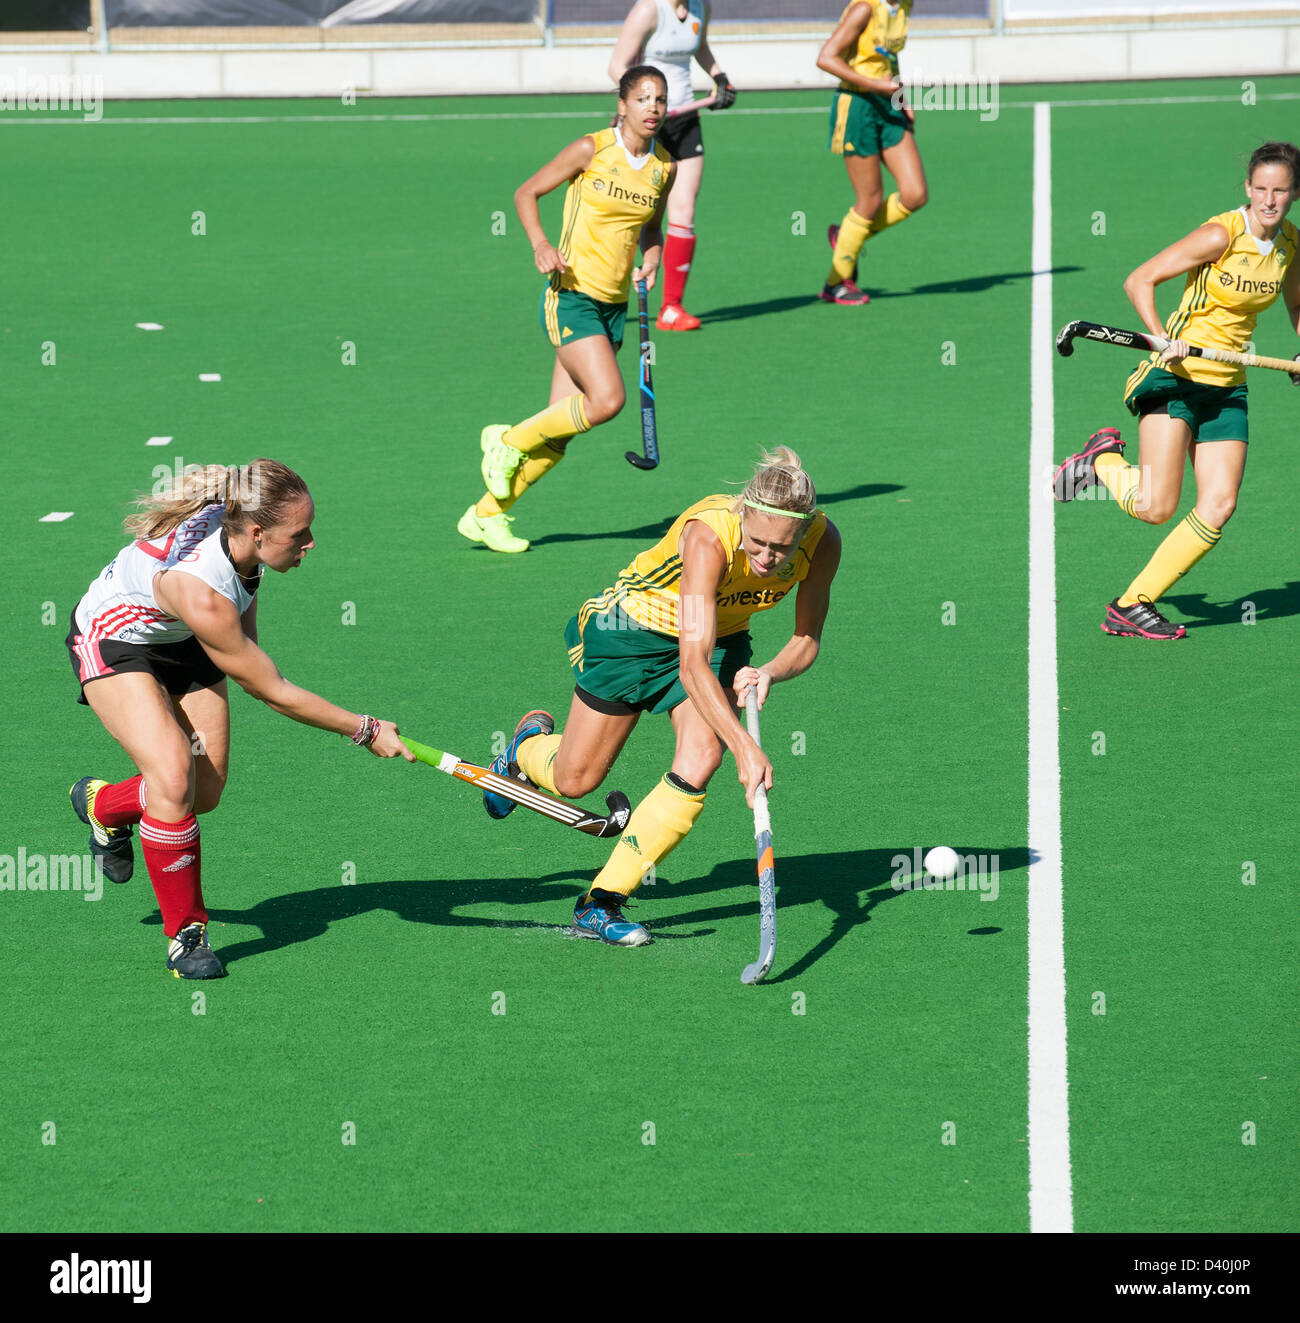 South Africa v England Ladies hockey match at Hartleyvale Stadium Cape Town SA England's Susannah Townsend in - Stock Image